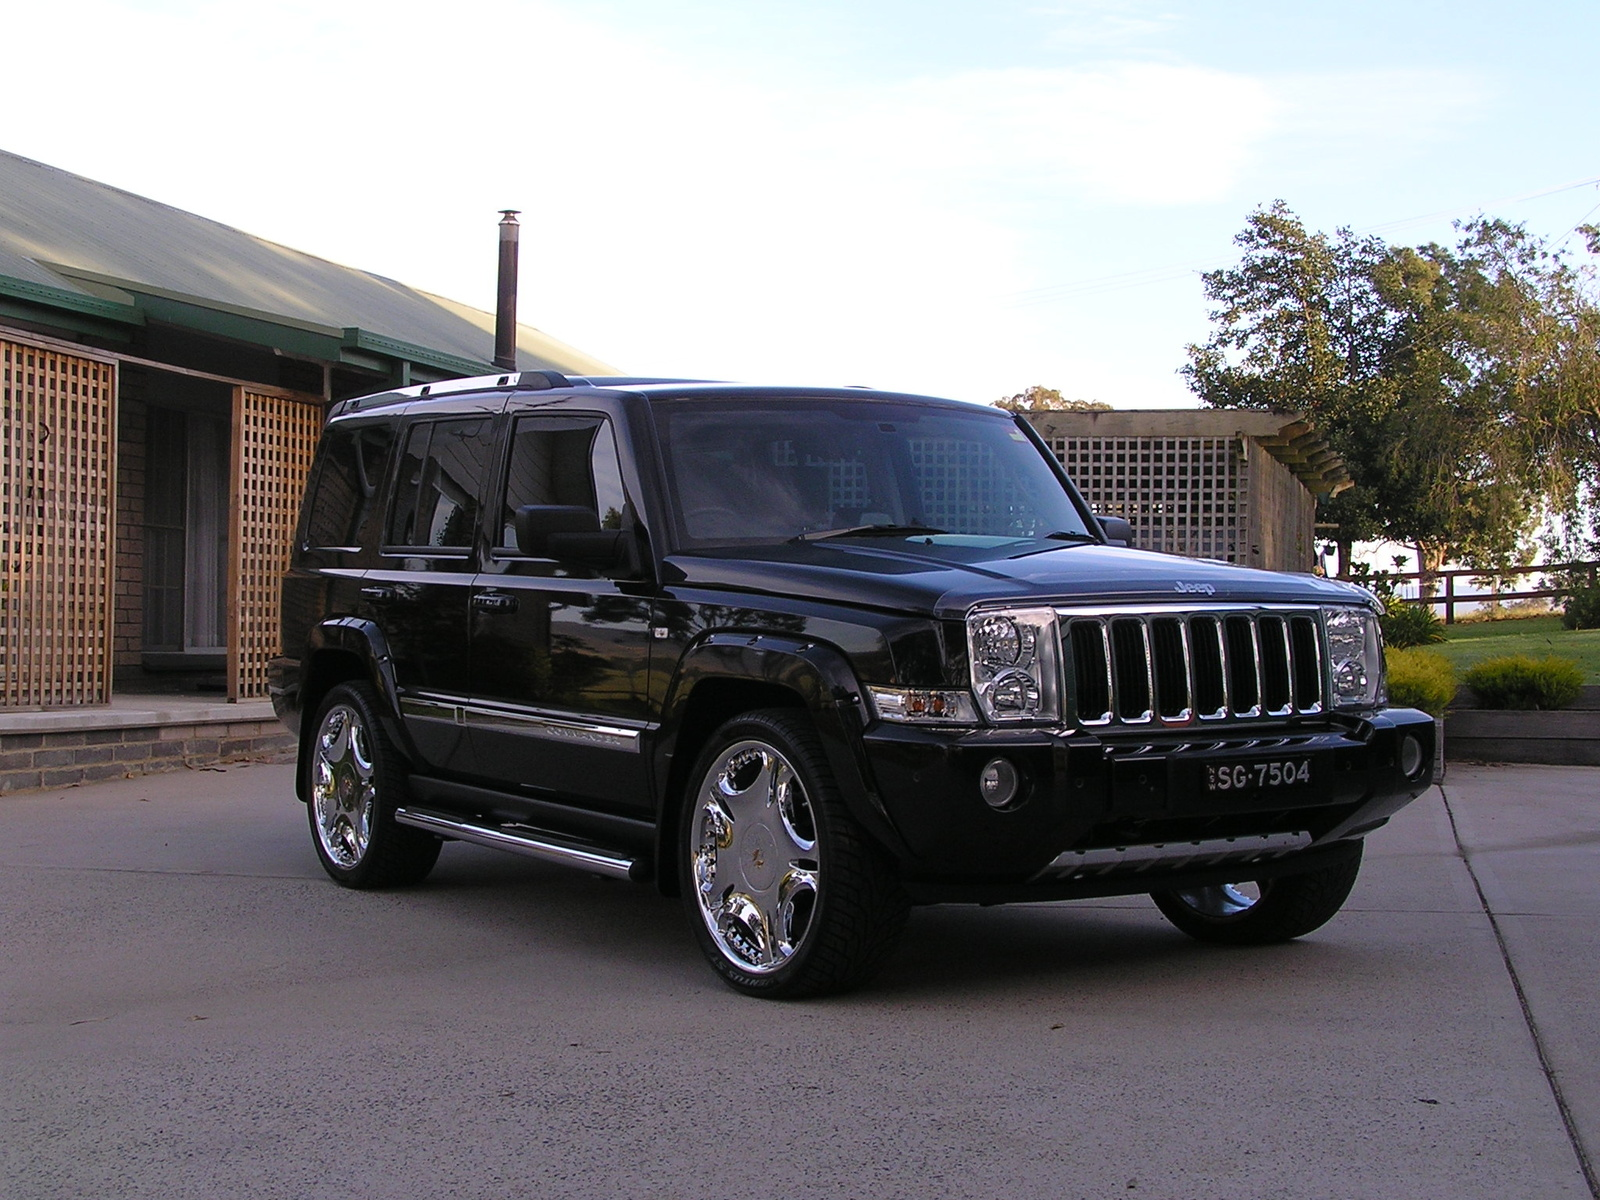 2007 jeep commander exterior colors. Black Bedroom Furniture Sets. Home Design Ideas